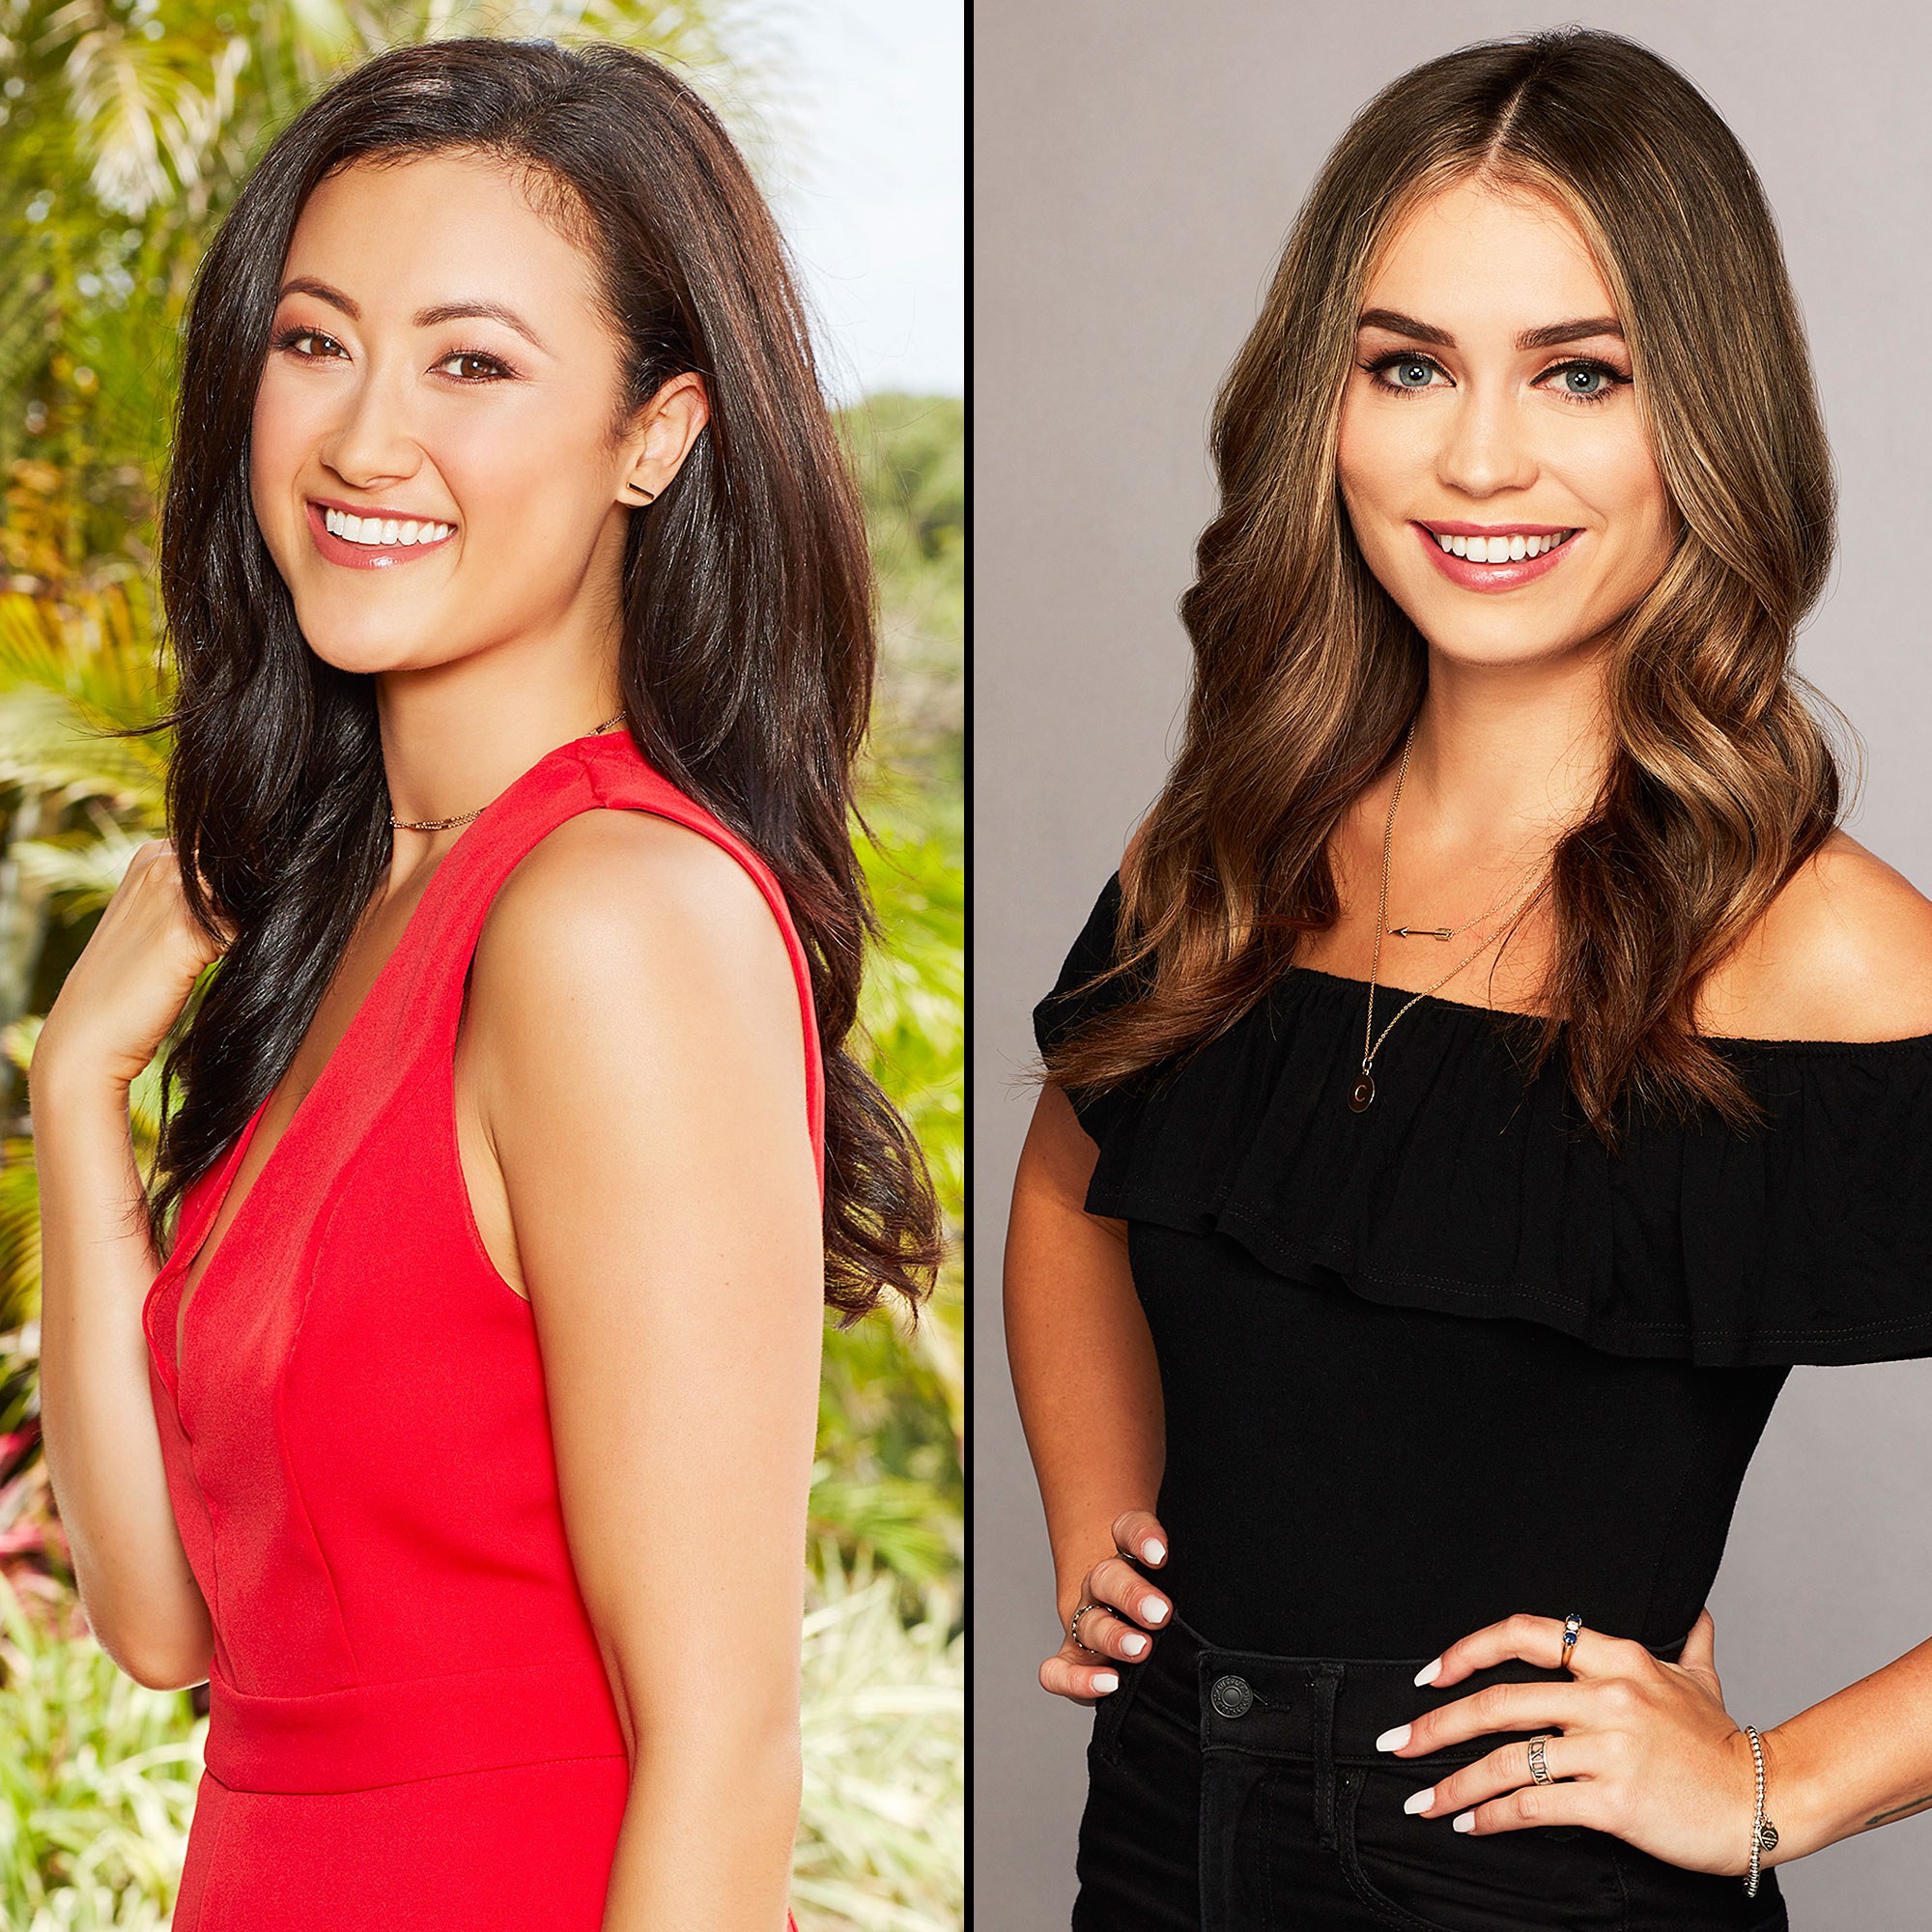 Colton Underwood Not a Good Kisser According to Sydney and Caitlin Bachelor in Paradise Stars